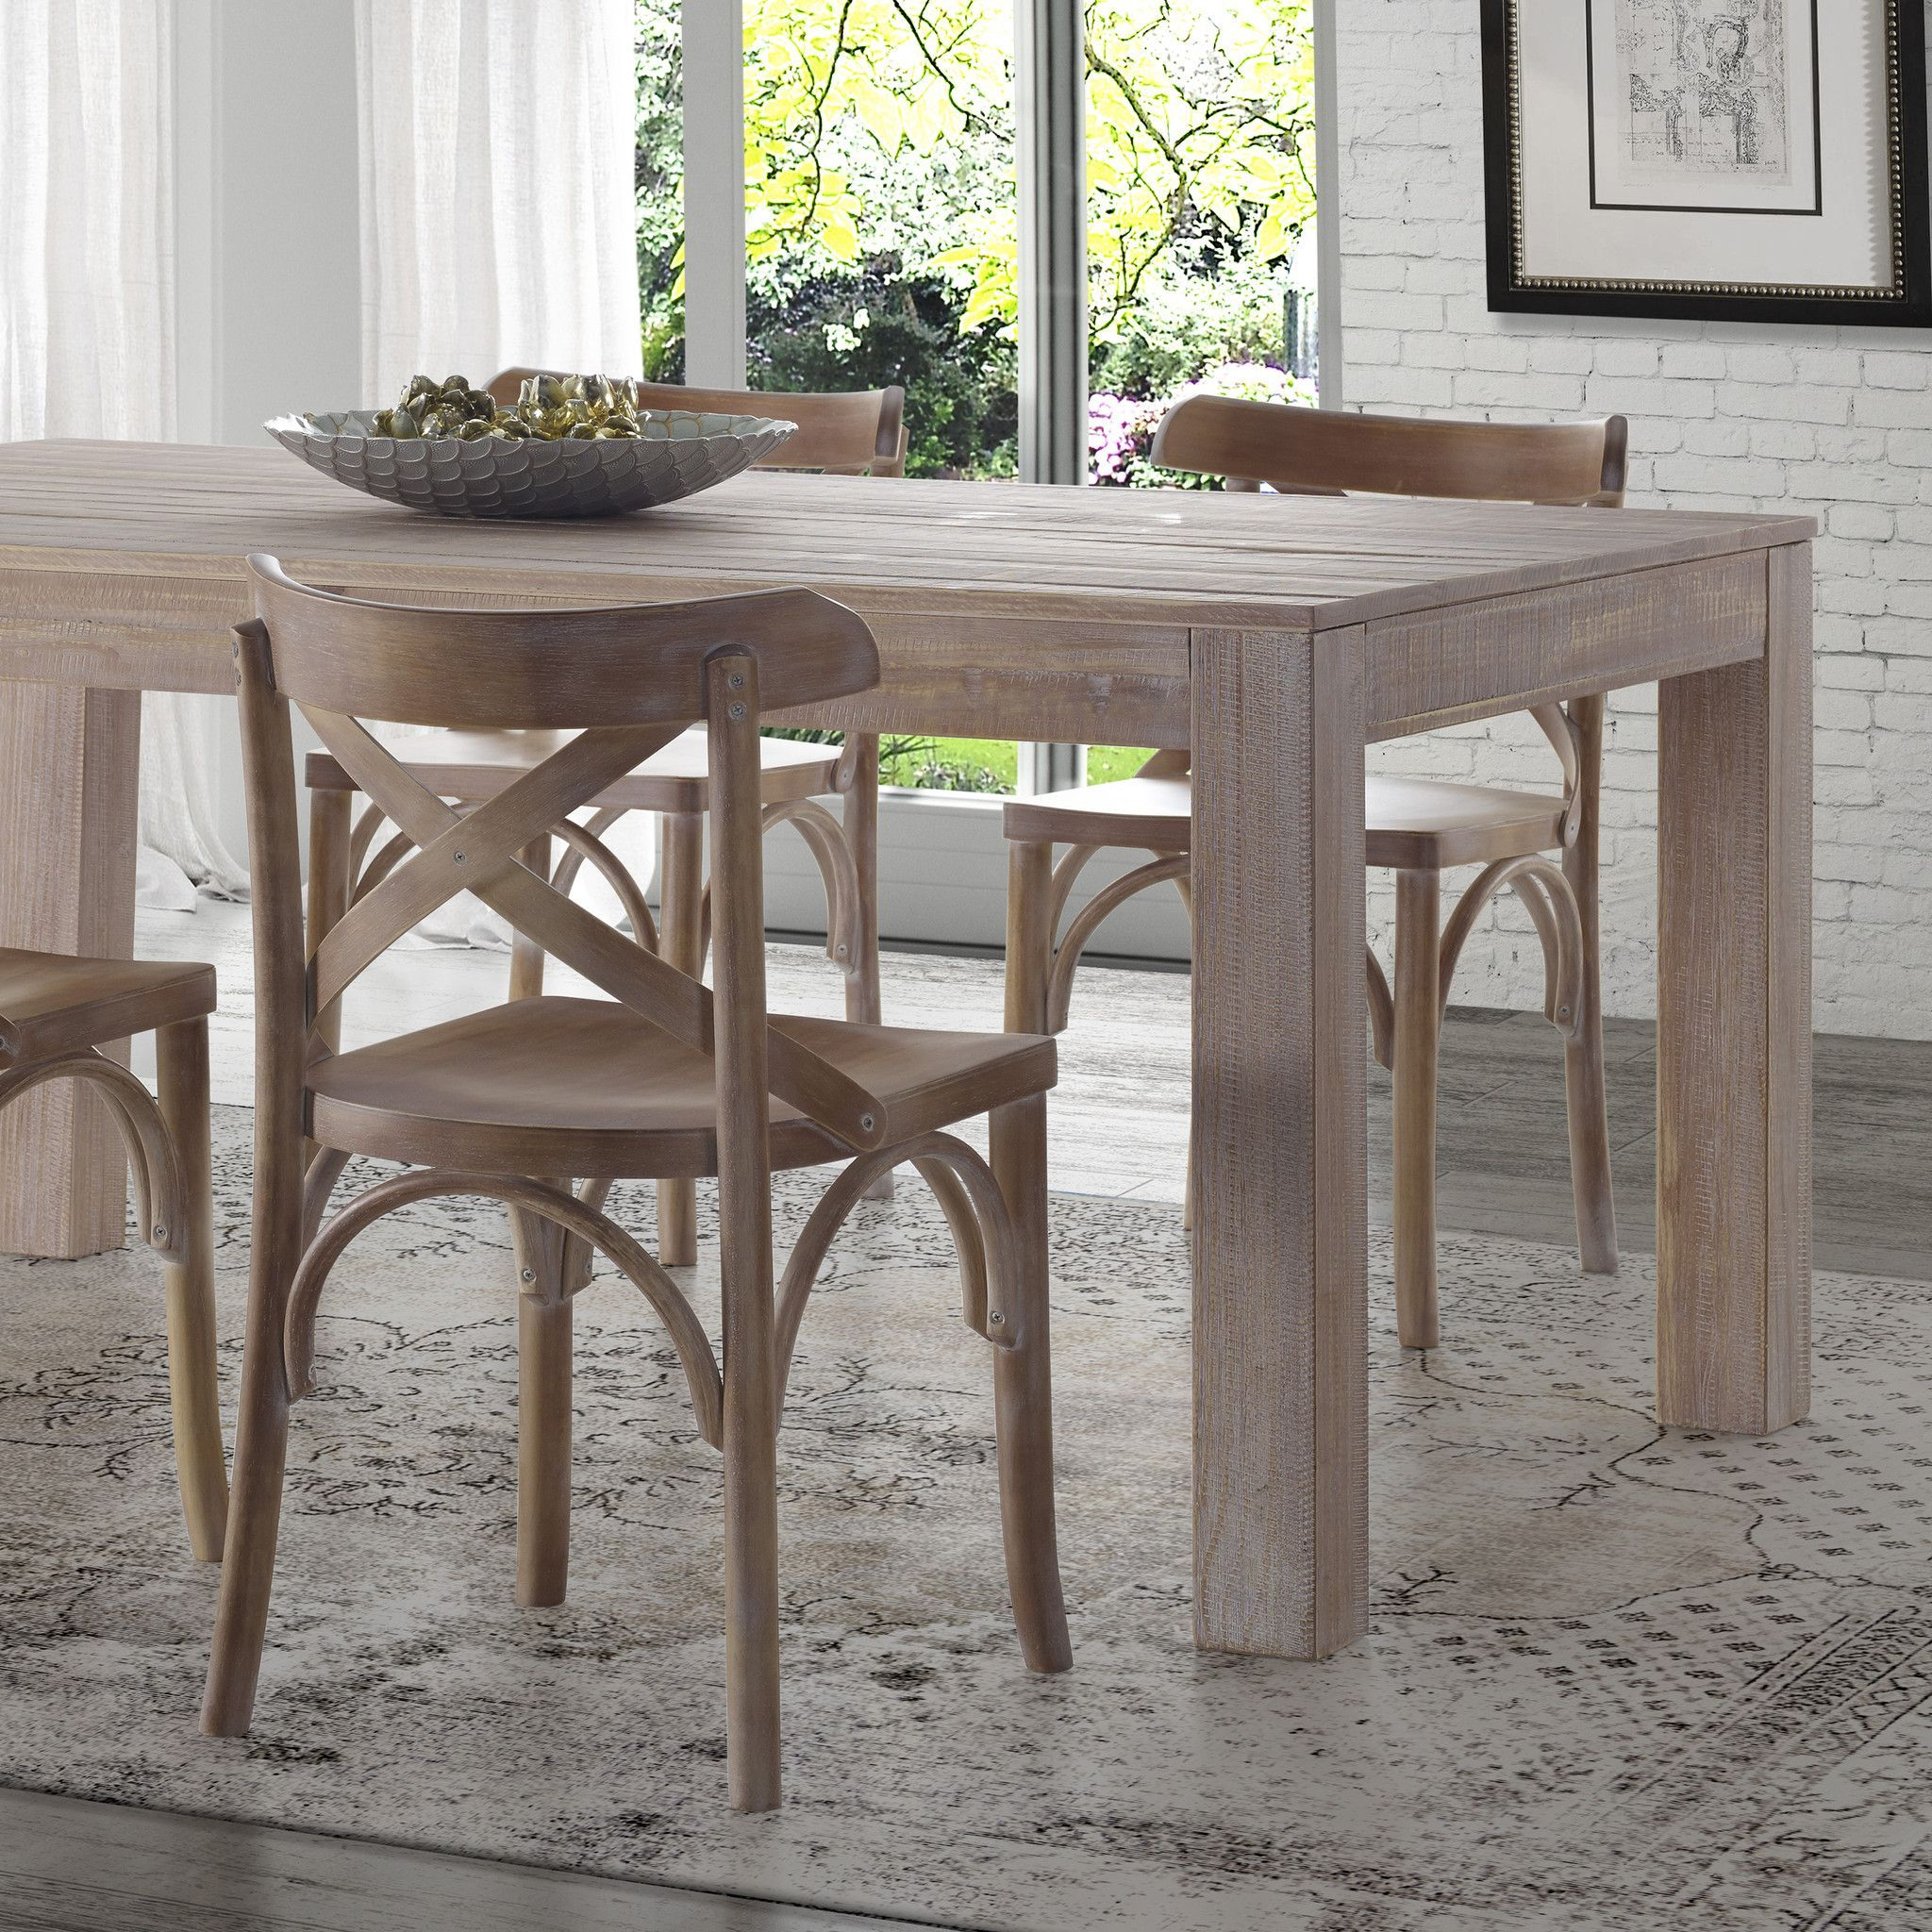 Dining Room Table Plans Woodworking: Montauk Solid Wood Dining Table